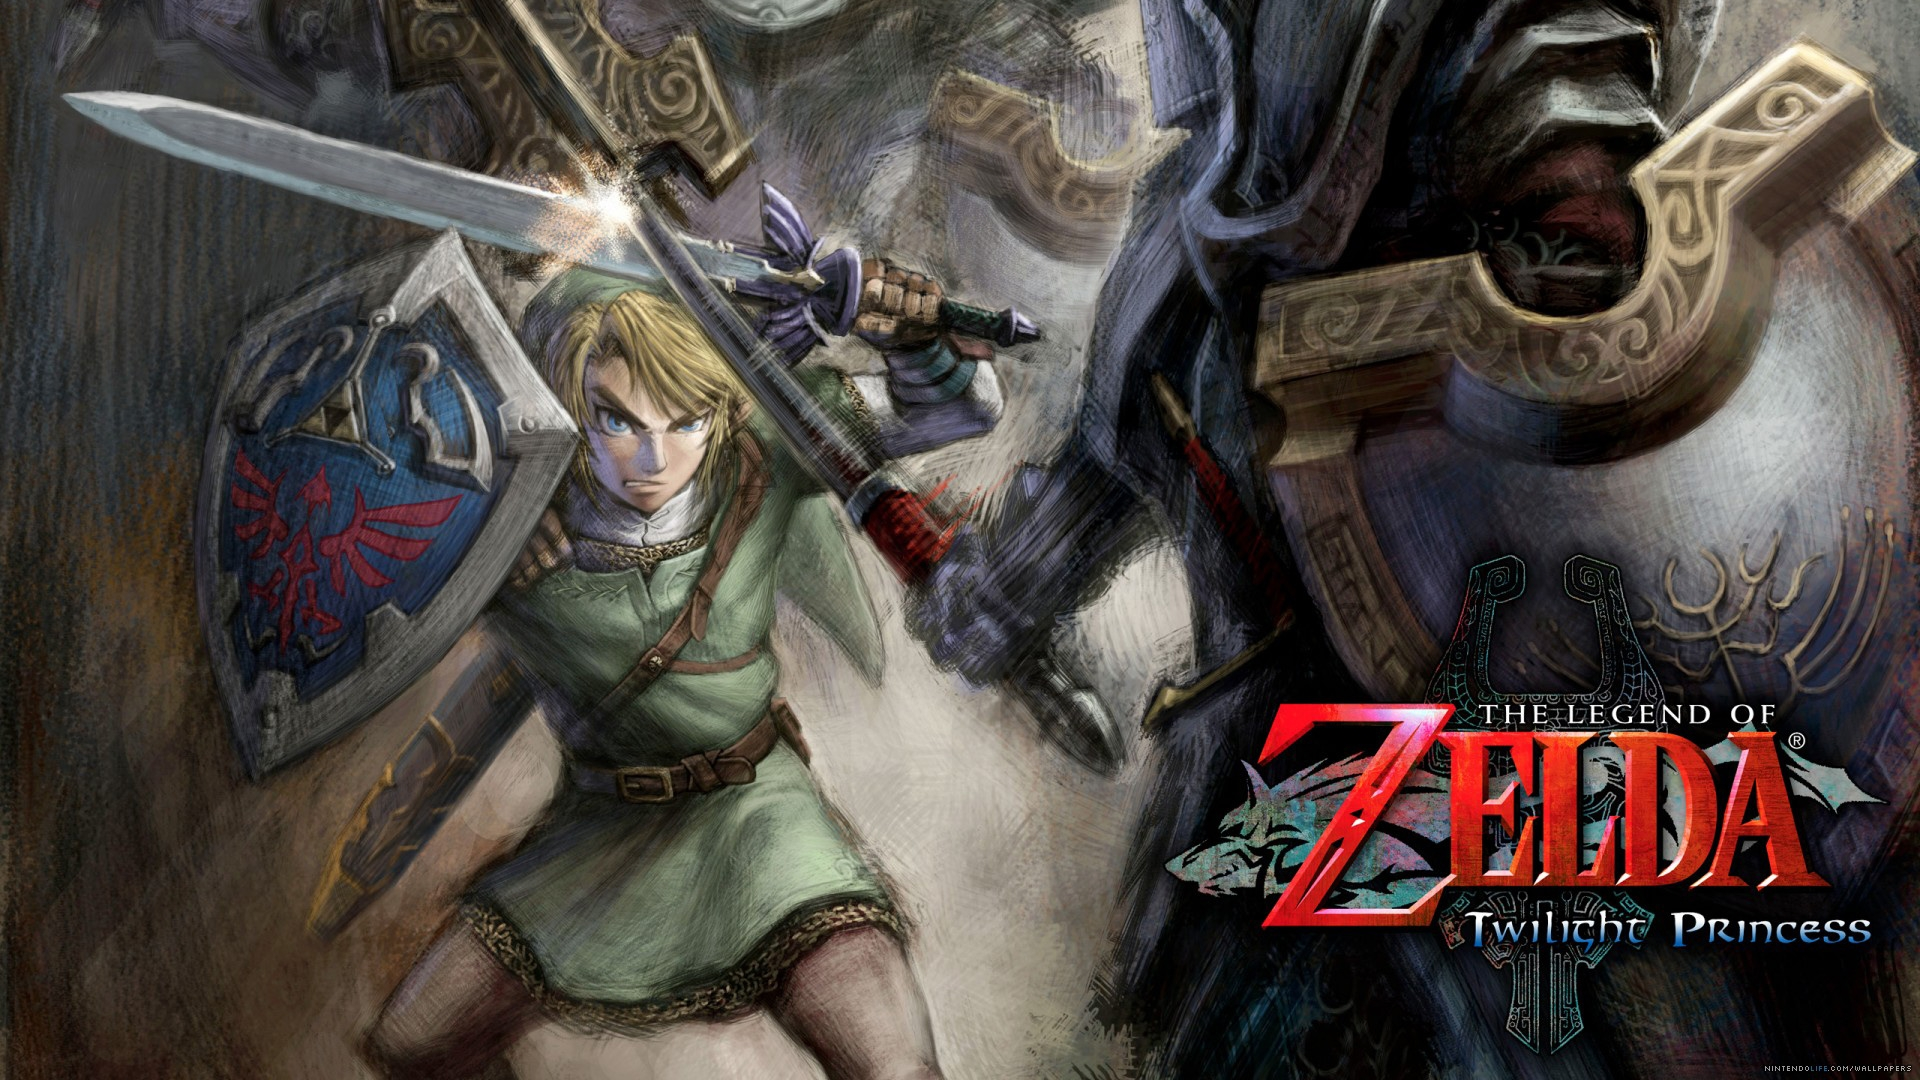 the legend of zelda twilight princess hd wallpapers skyward sword 1920x1080